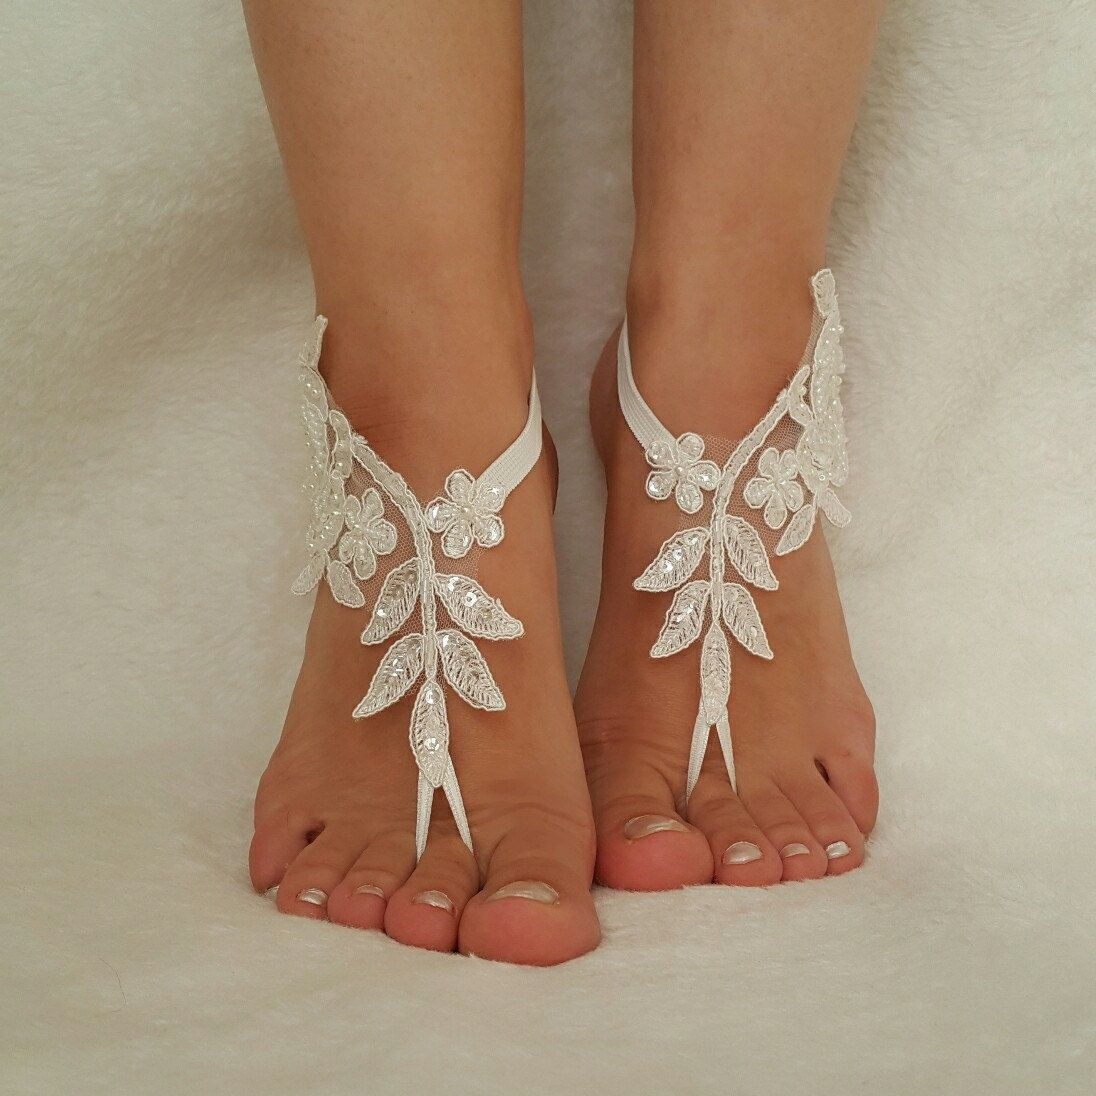 6 Colors Beach Wedding Sandals Bridal Anklet Bridesmaid Gift Lace Bangle Feet Accessories Foot Jewelry Flexible